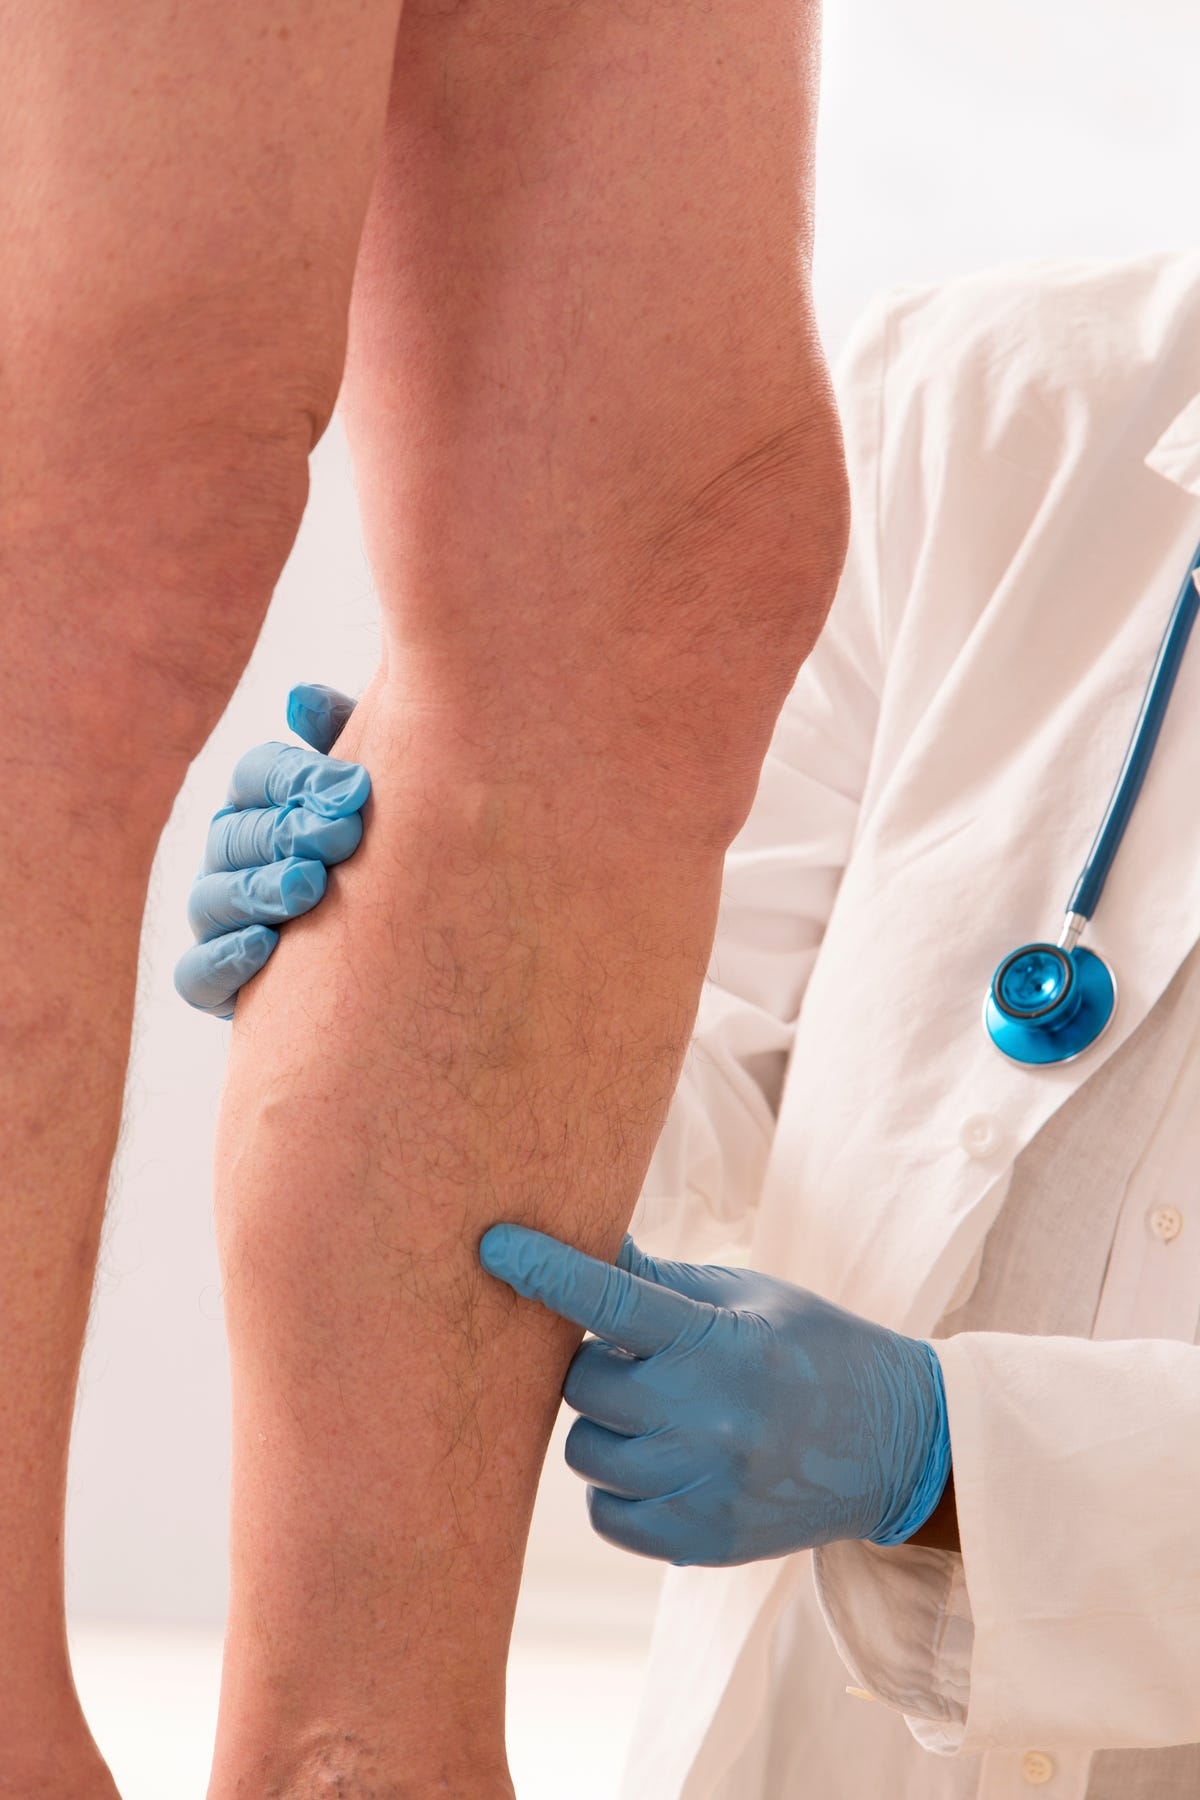 Achy, heavy legs? Could be leaking veins